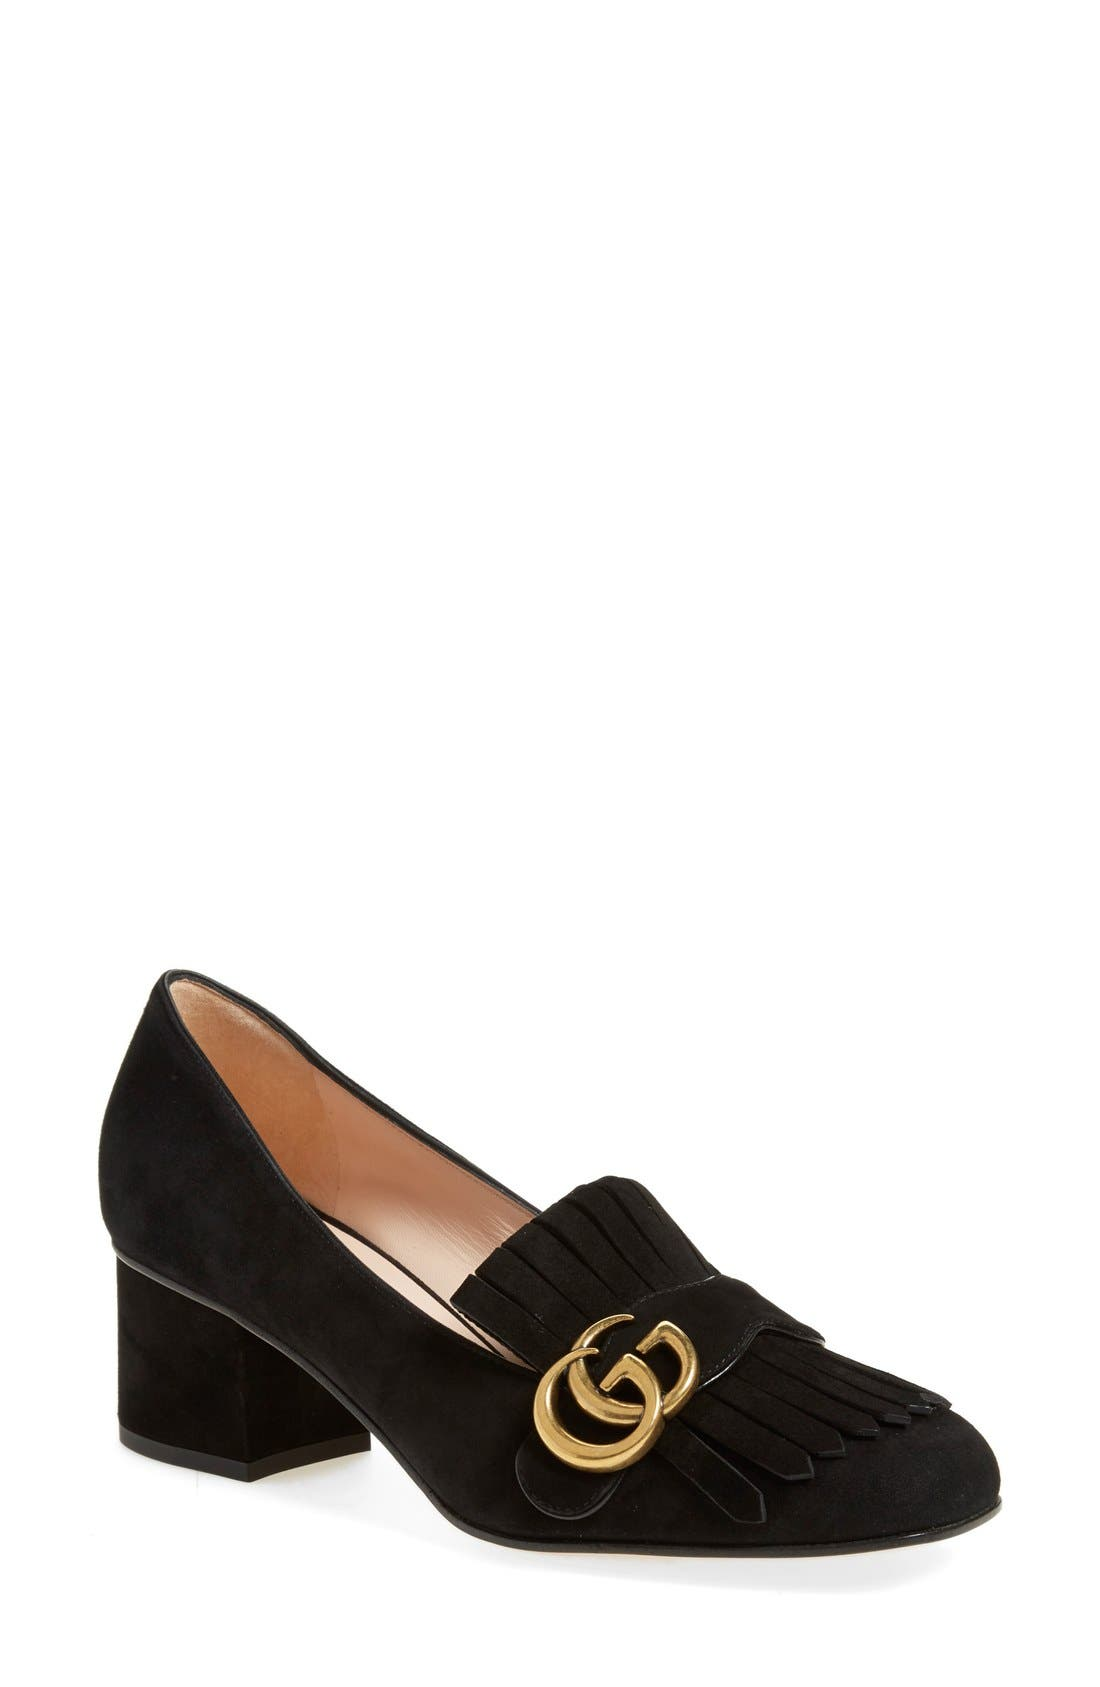 GG Marmont Pump,                         Main,                         color, BLACK SUEDE